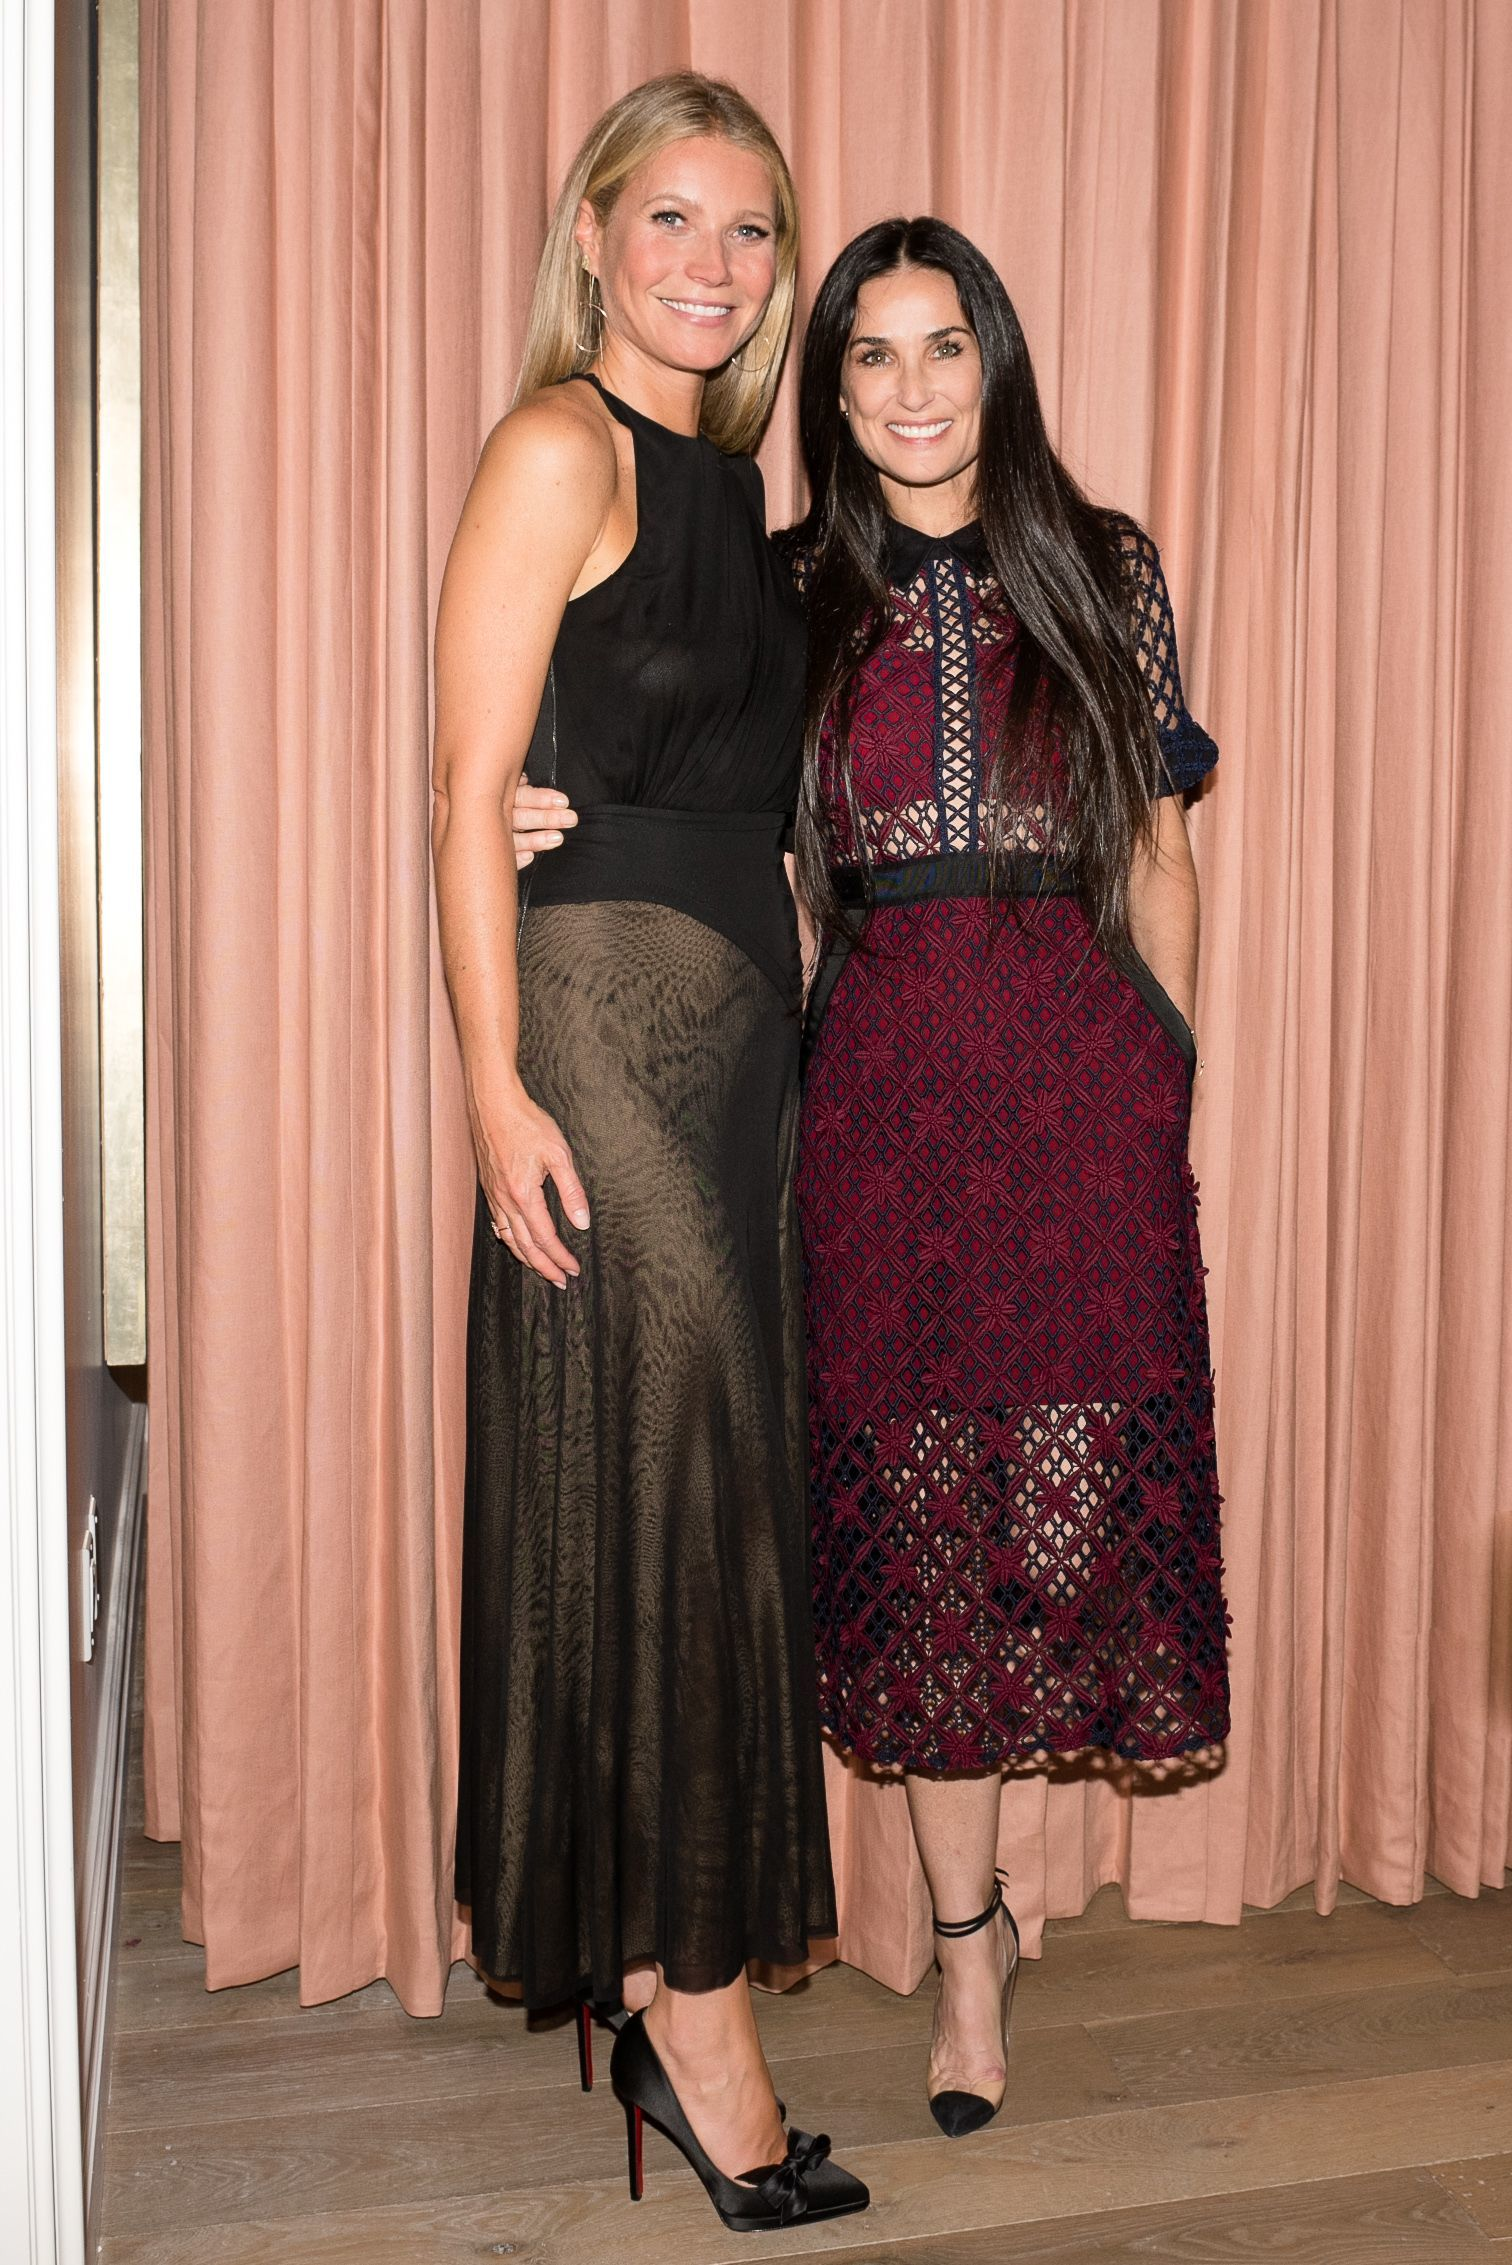 Gwyneth Paltrow and Demi Moore attend the Gwyneth Paltrow And Christian Louboutin Fete The Opening OF Goop Lab: And Unveil The Goop X Christian Louboutin Capsule Collection in Los Angeles on Sept. 14, 2017.